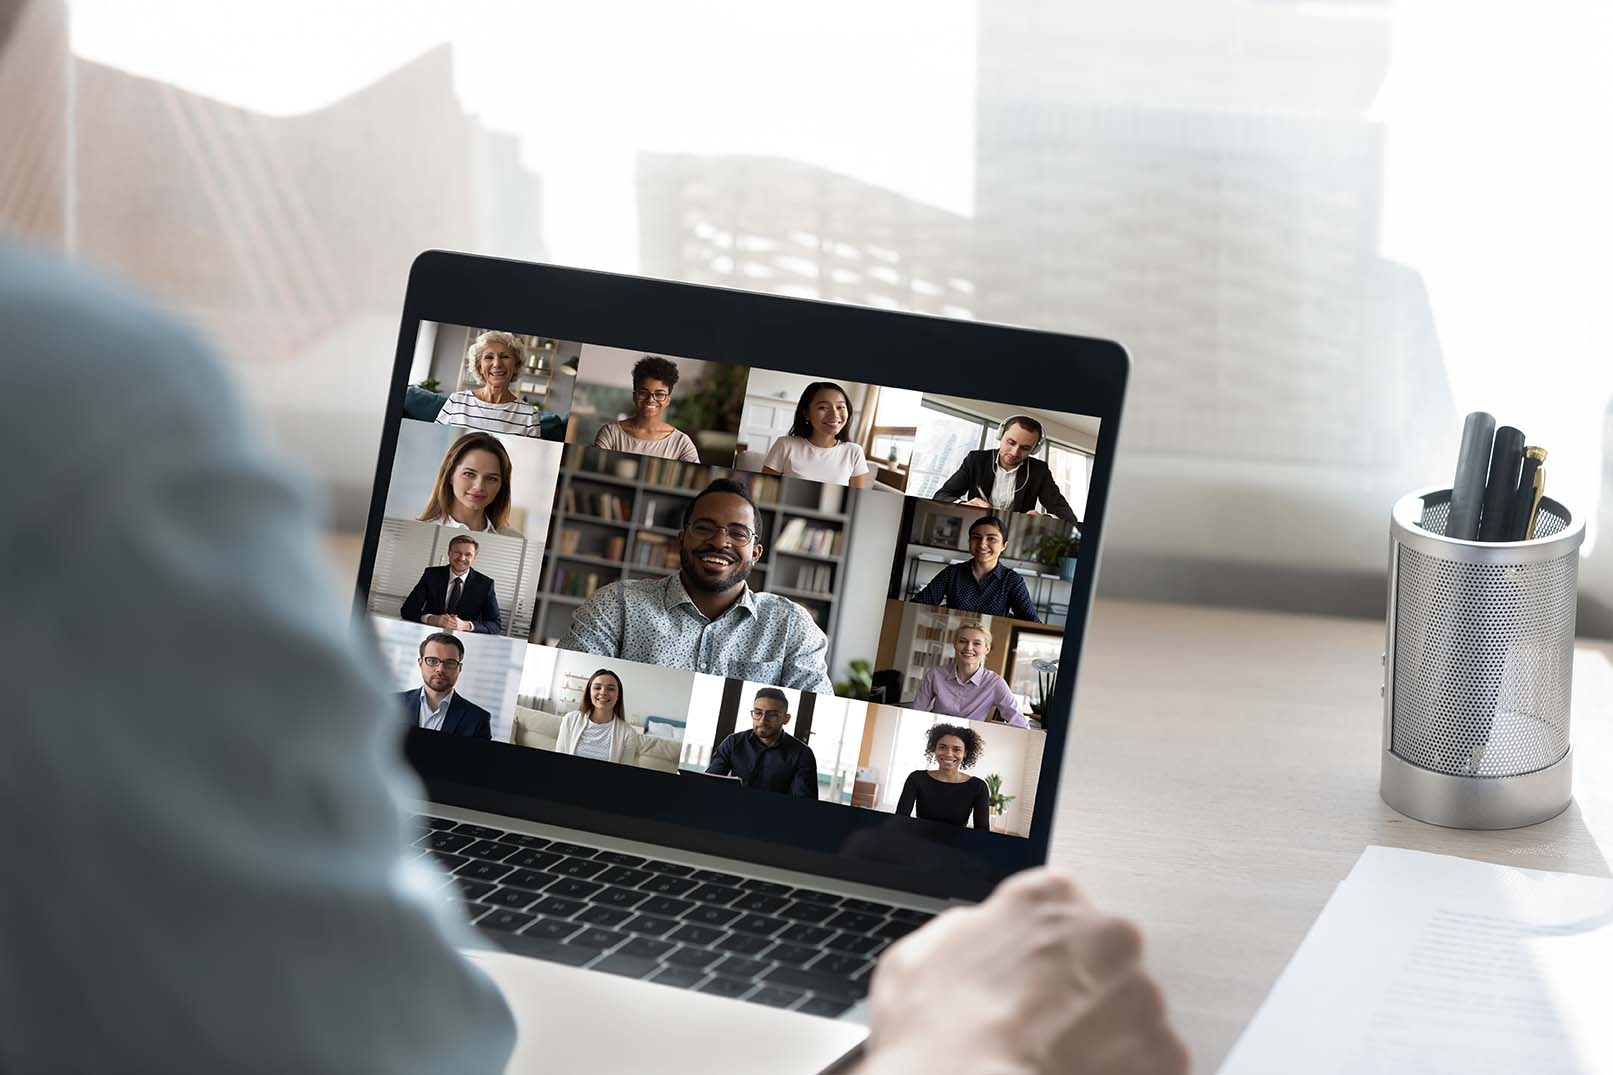 Online conference with multiple people